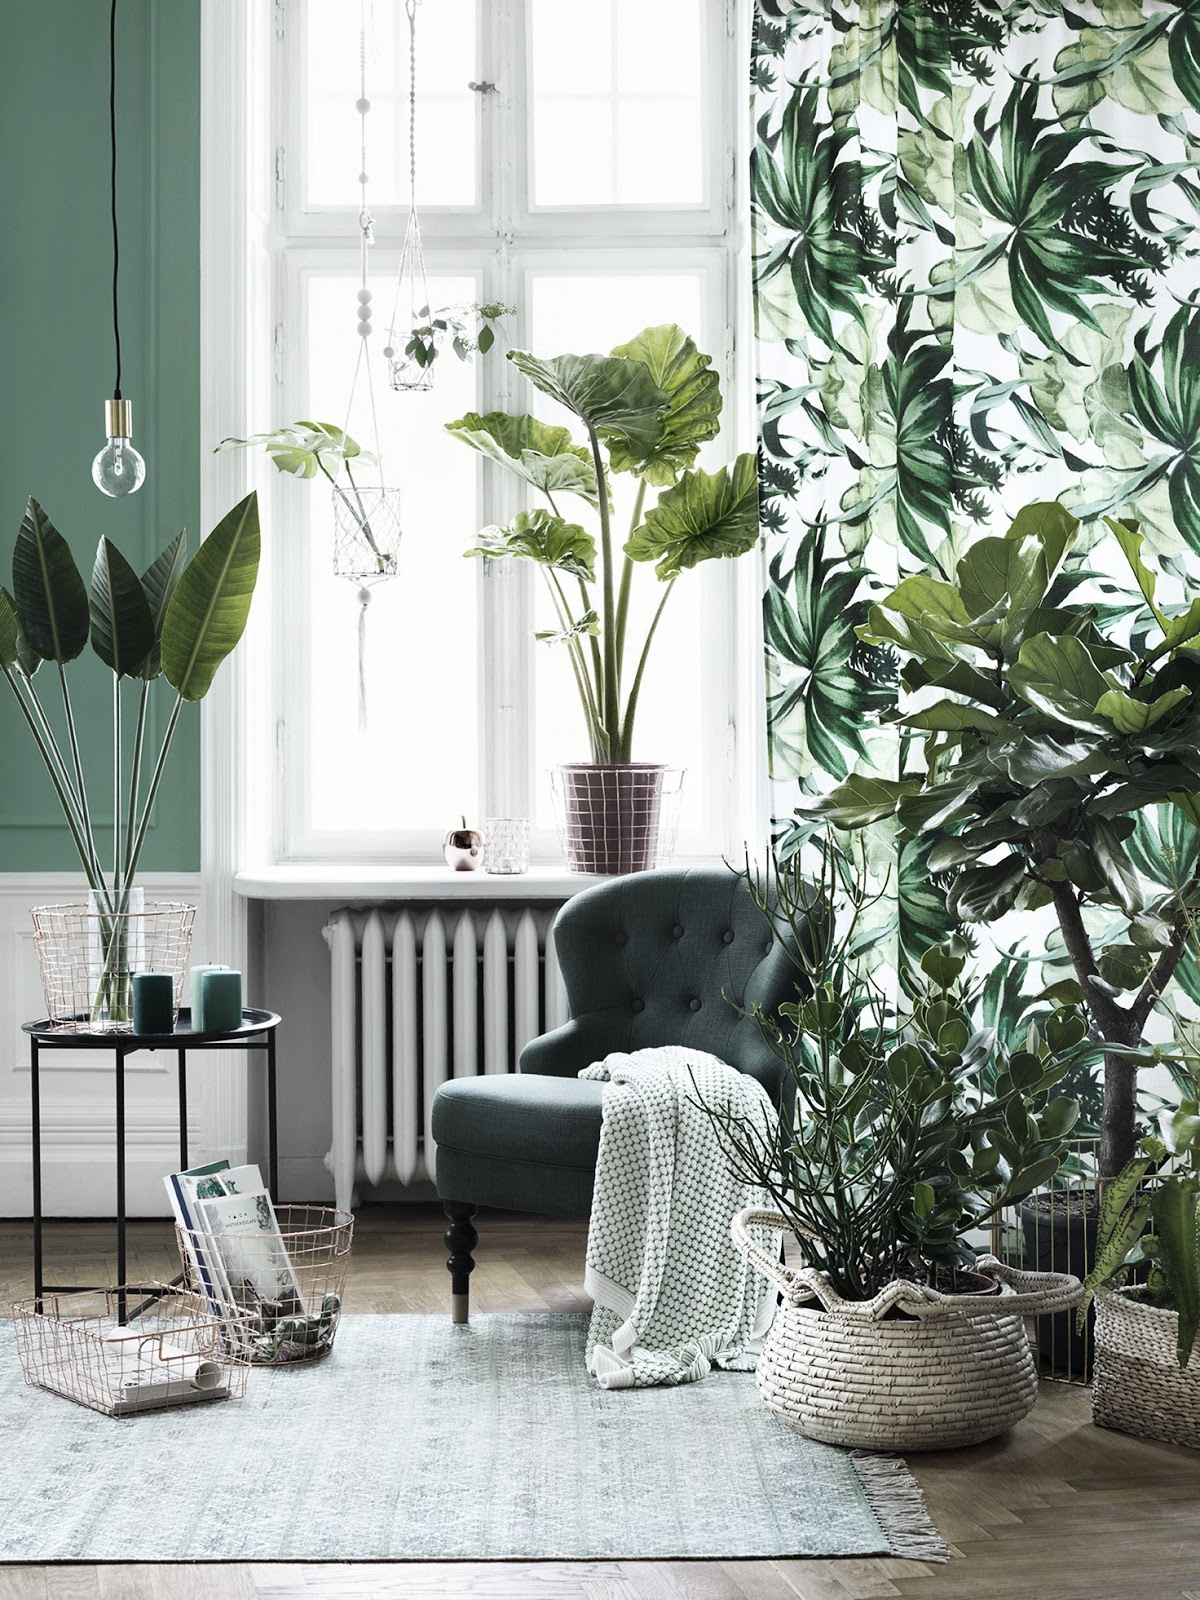 Revitalize Your Home with Lush Indoor Plants in Every Room on house plants for stairs, house plants for bathrooms, house plants for hallways, plants for low light rooms, plants that like dark rooms, house plants for offices,